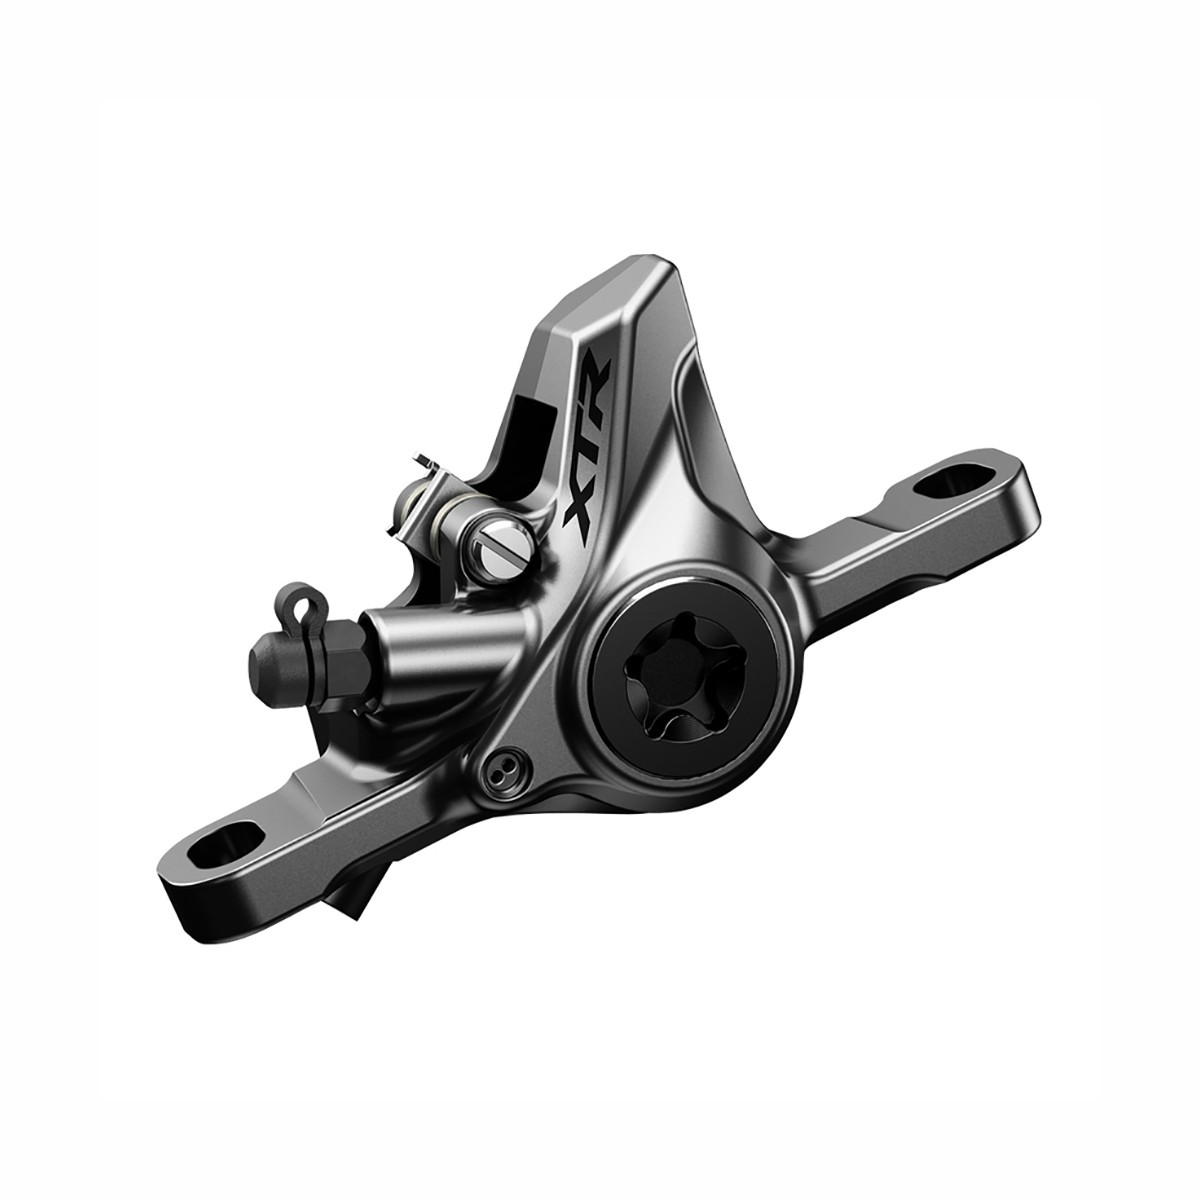 SHIMANO DISC BRAKE BR-M9100 XTR (K04TI RESIN PAD)